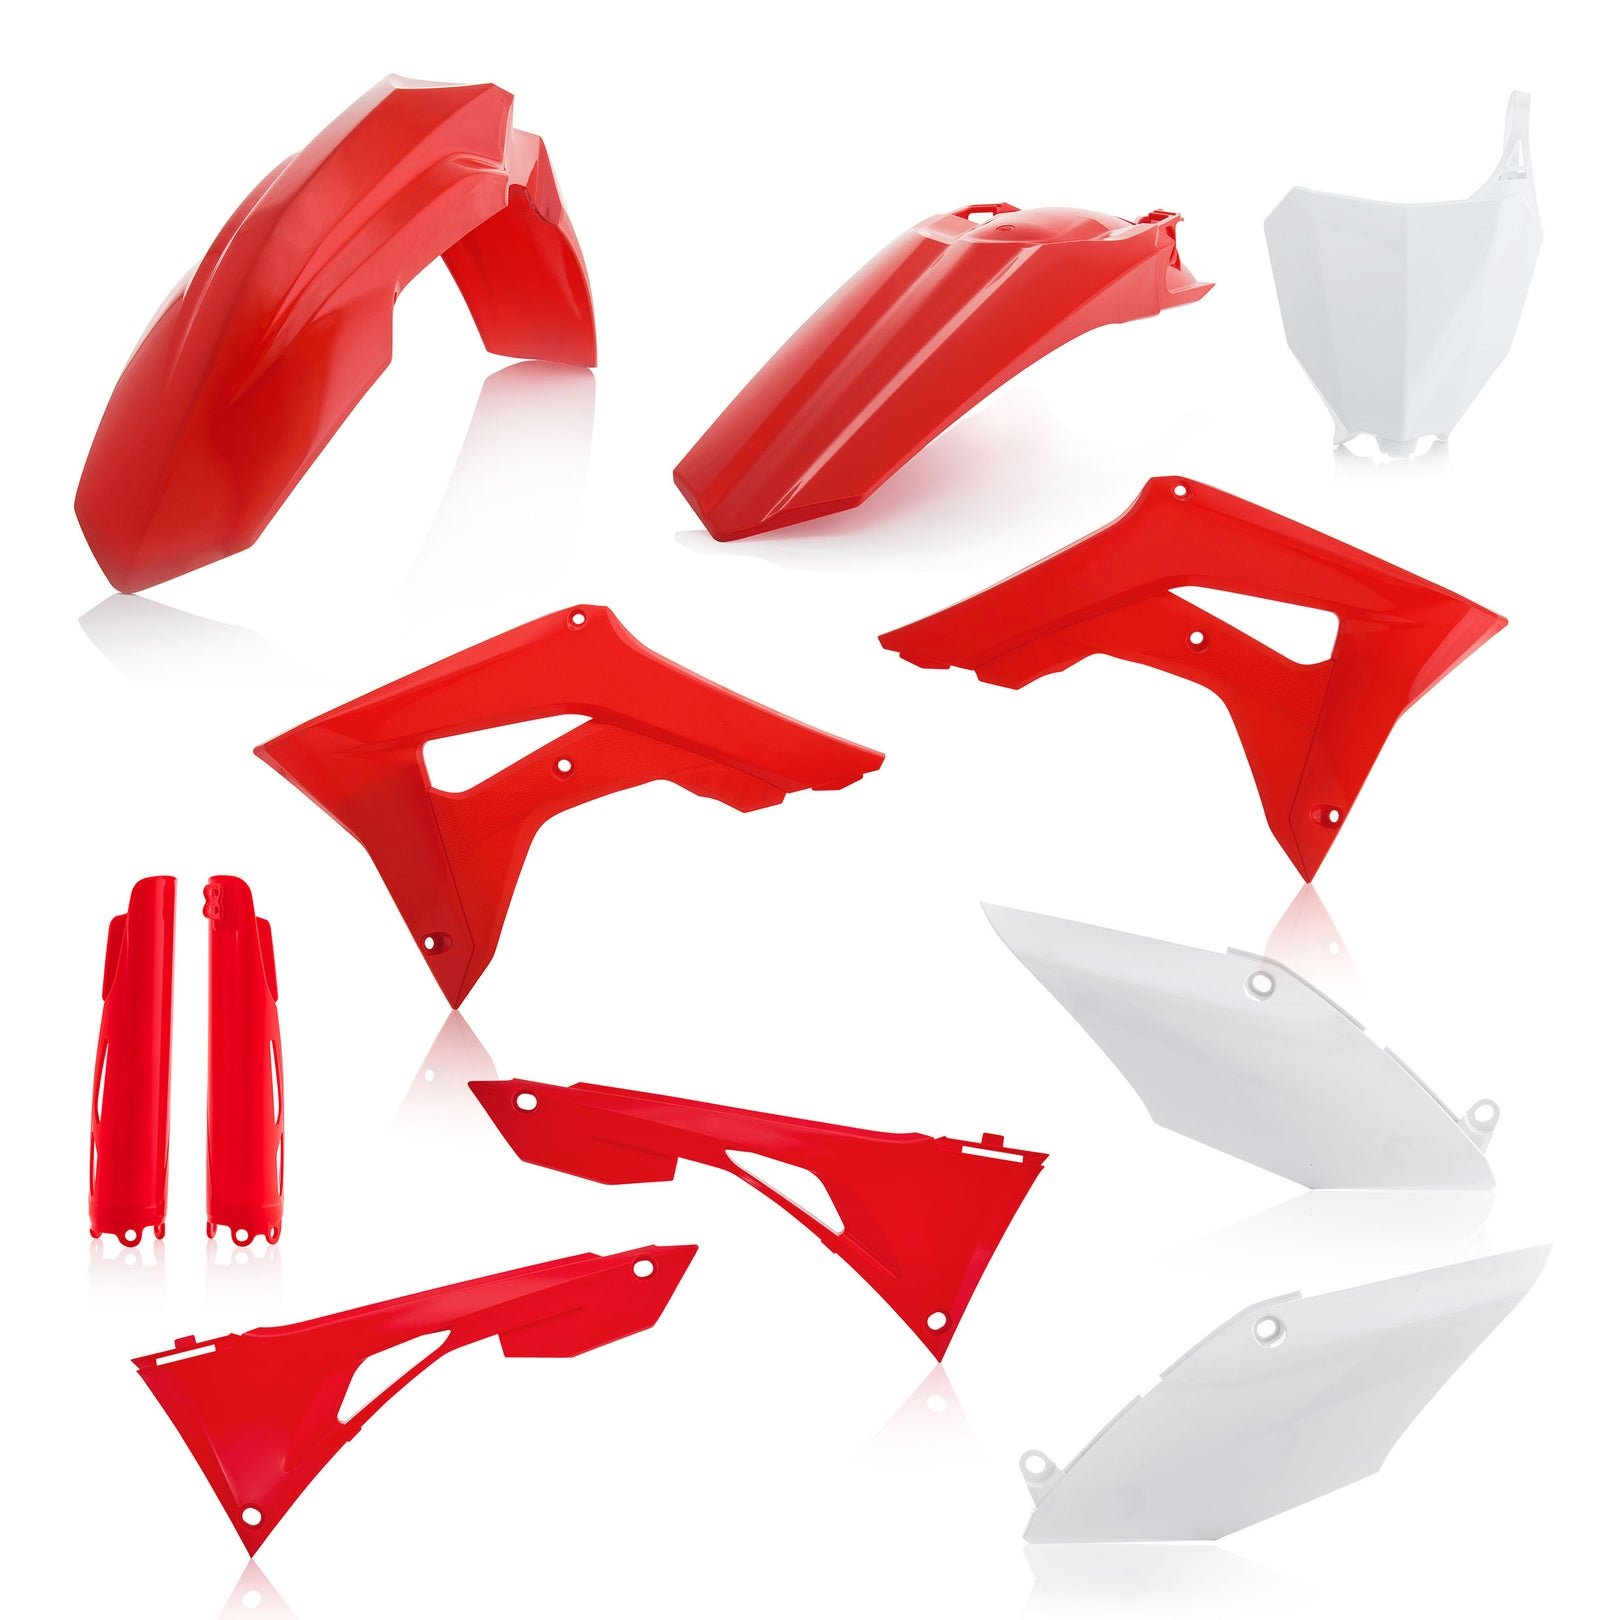 HONDA FULL PLASTIC KIT - Original - CRF250R/450R: 19-20 - Acerbis (includes airbox cover, does not include the tank cover)